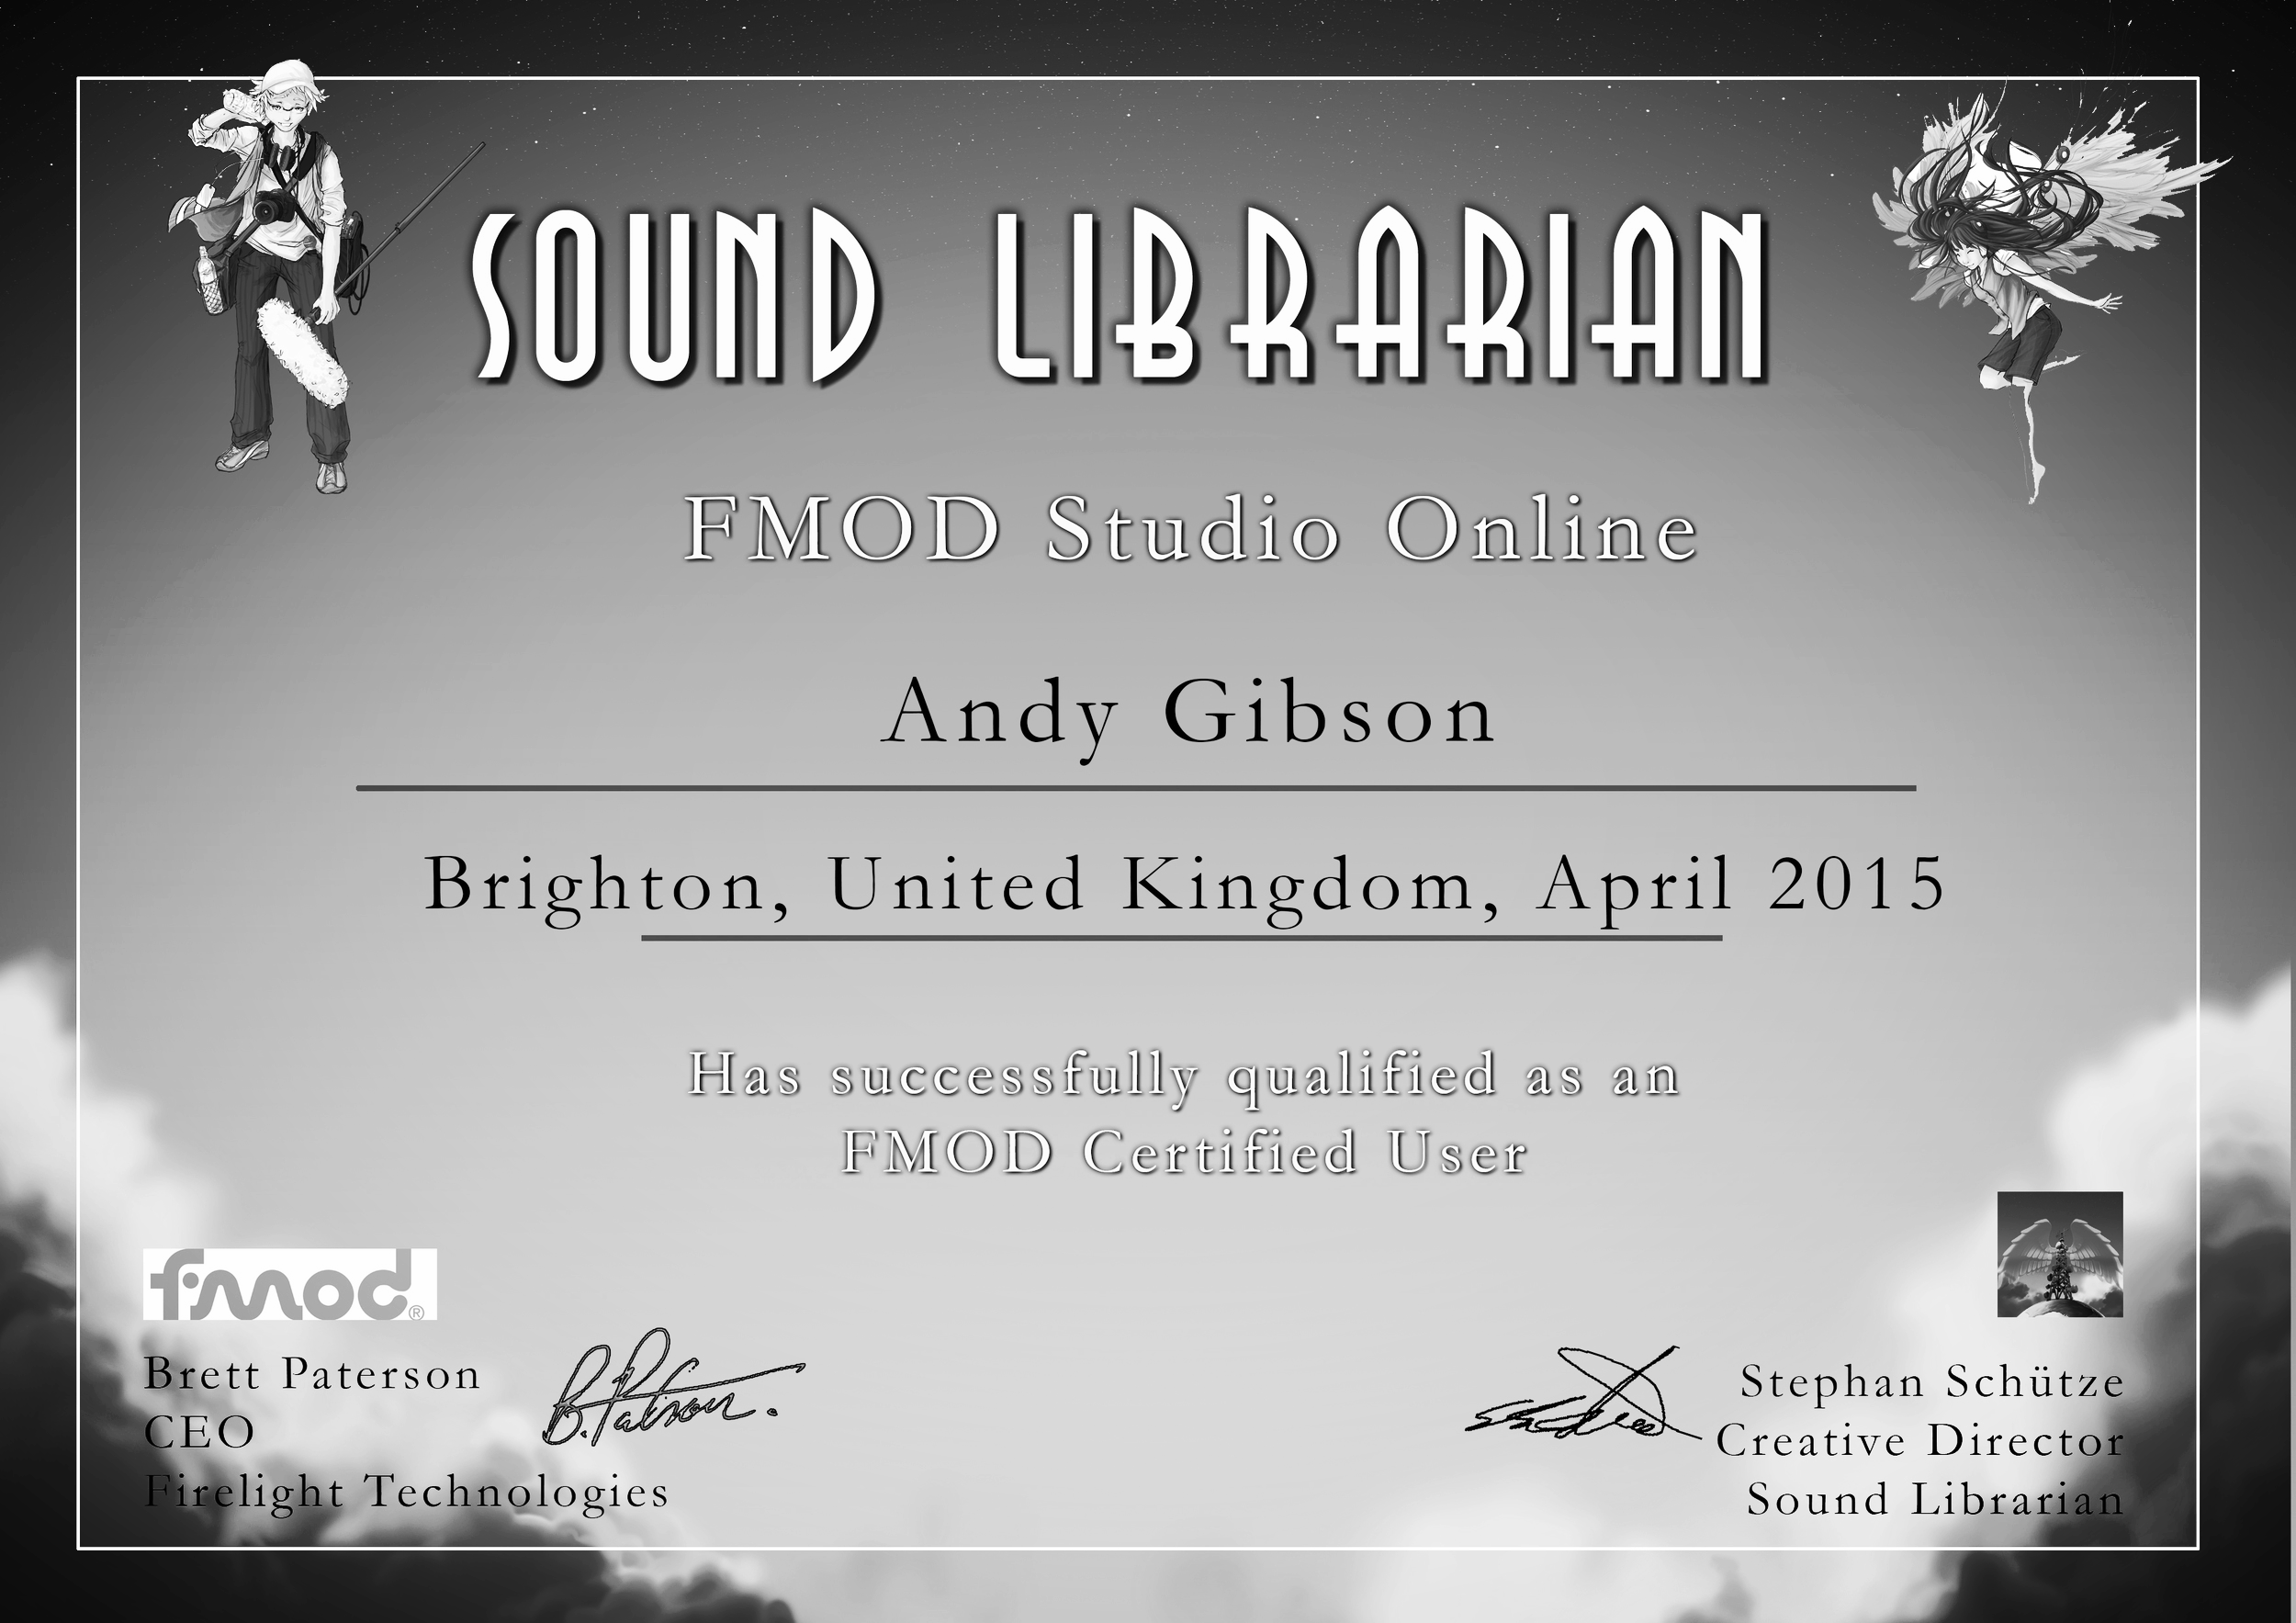 I am an official Fmod Studio certified user.